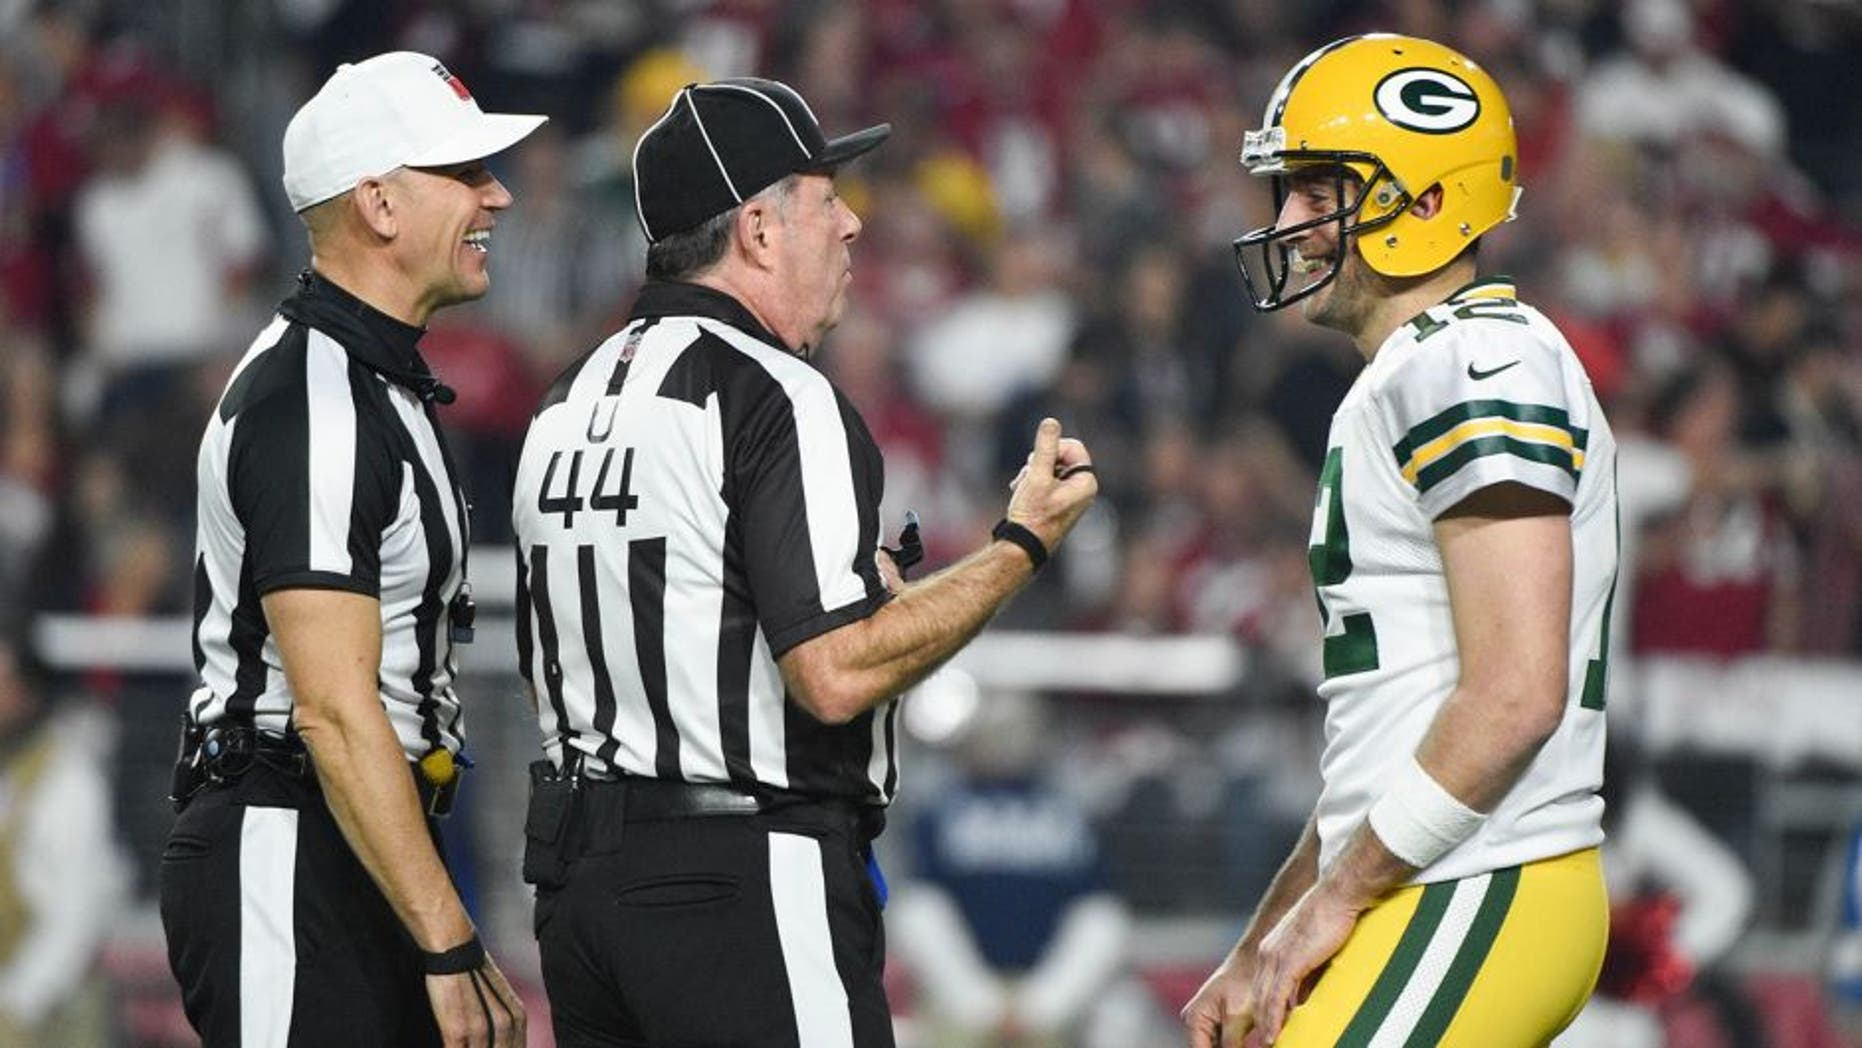 January 16, 2016; Glendale, AZ, USA; Green Bay Packers quarterback Aaron Rodgers (12) talks to NFL referee Clete Blakeman (34, left) and umpire Jeff Rice (44) during the first quarter in a NFC Divisional round playoff game against the Arizona Cardinals at University of Phoenix Stadium. The Cardinals defeated the Packers 26-20 in overtime. Mandatory Credit: Kyle Terada-USA TODAY Sports